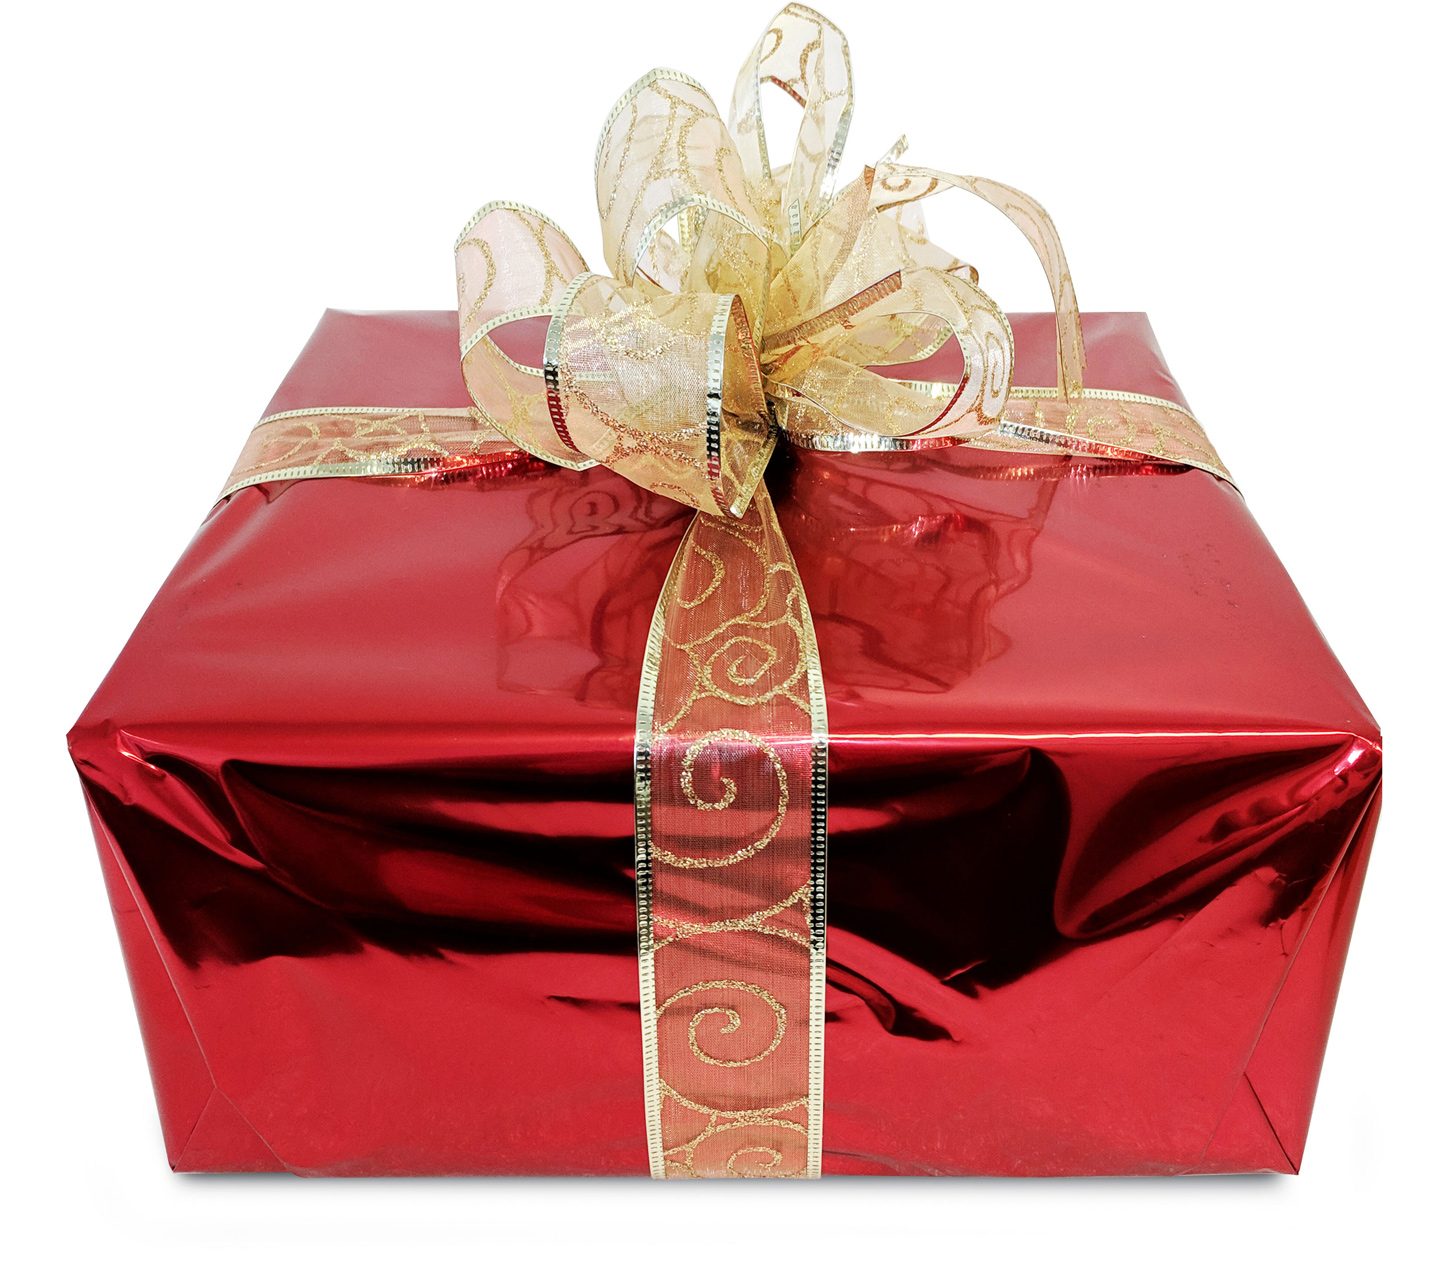 gift wrap your purchase from Dragon Mist Distillery for only $5